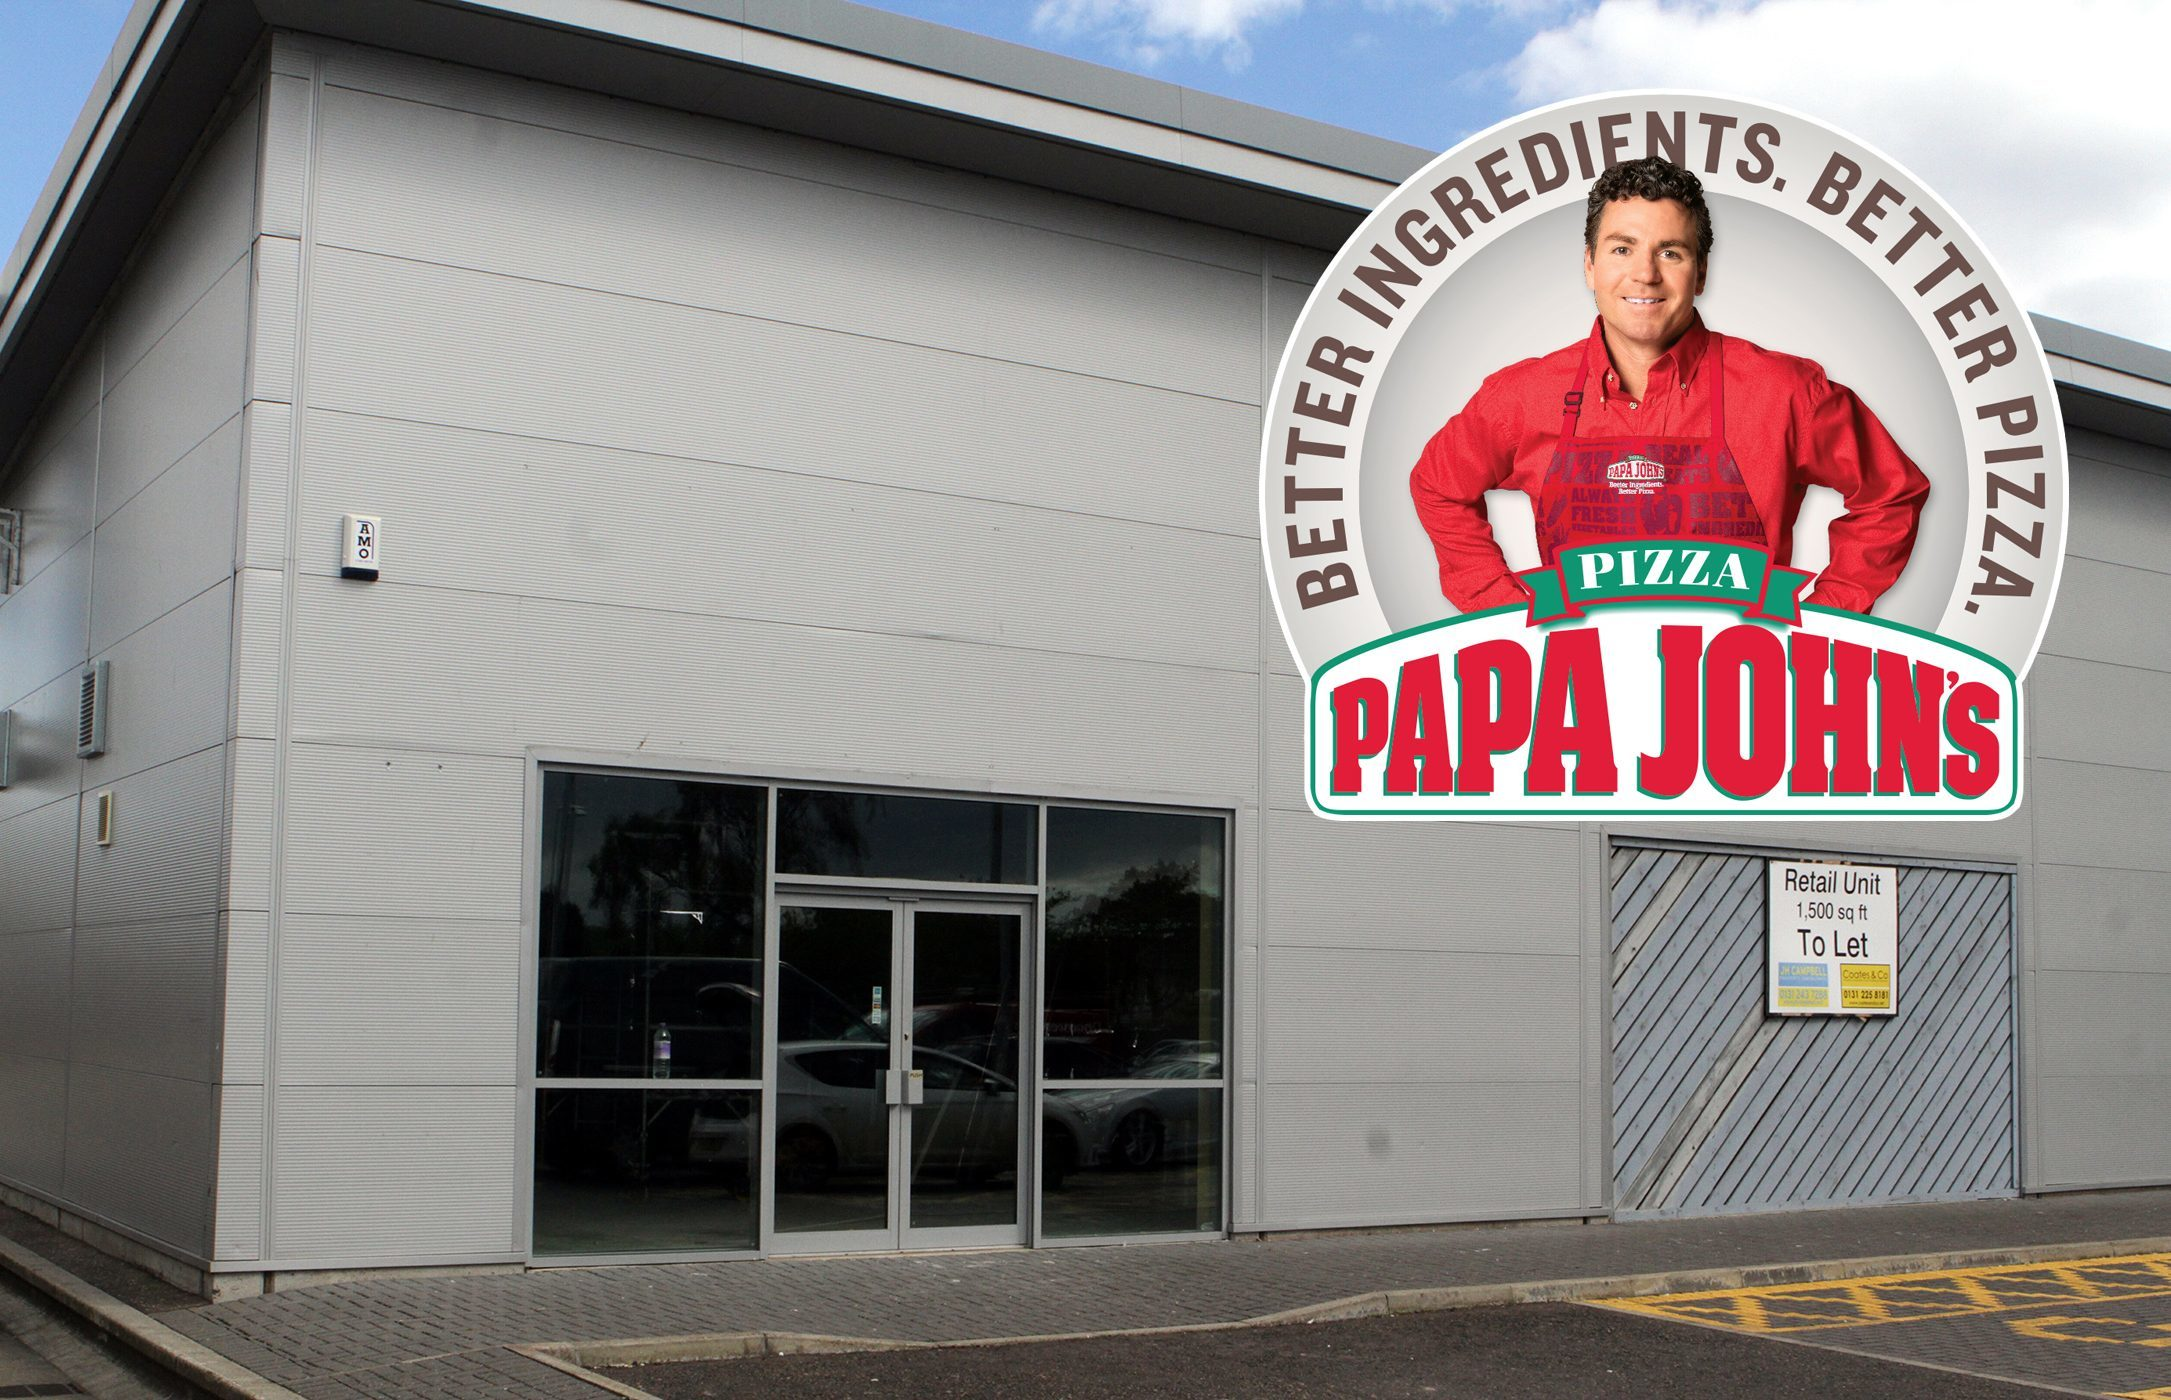 Papa John's opened recently on Arbroath Road.